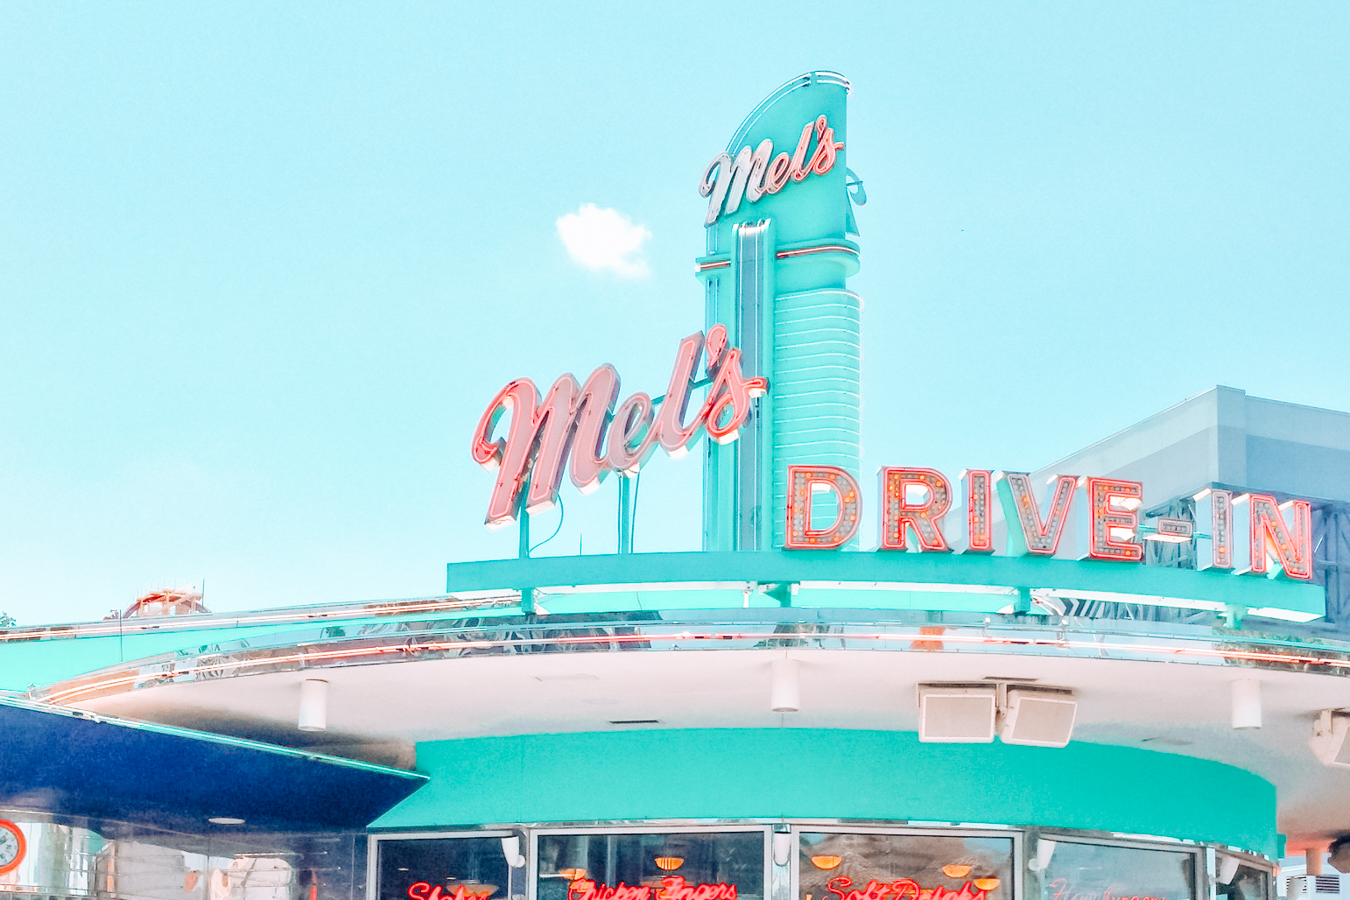 Instagrammable blue restaurant in Orlando with colorful text